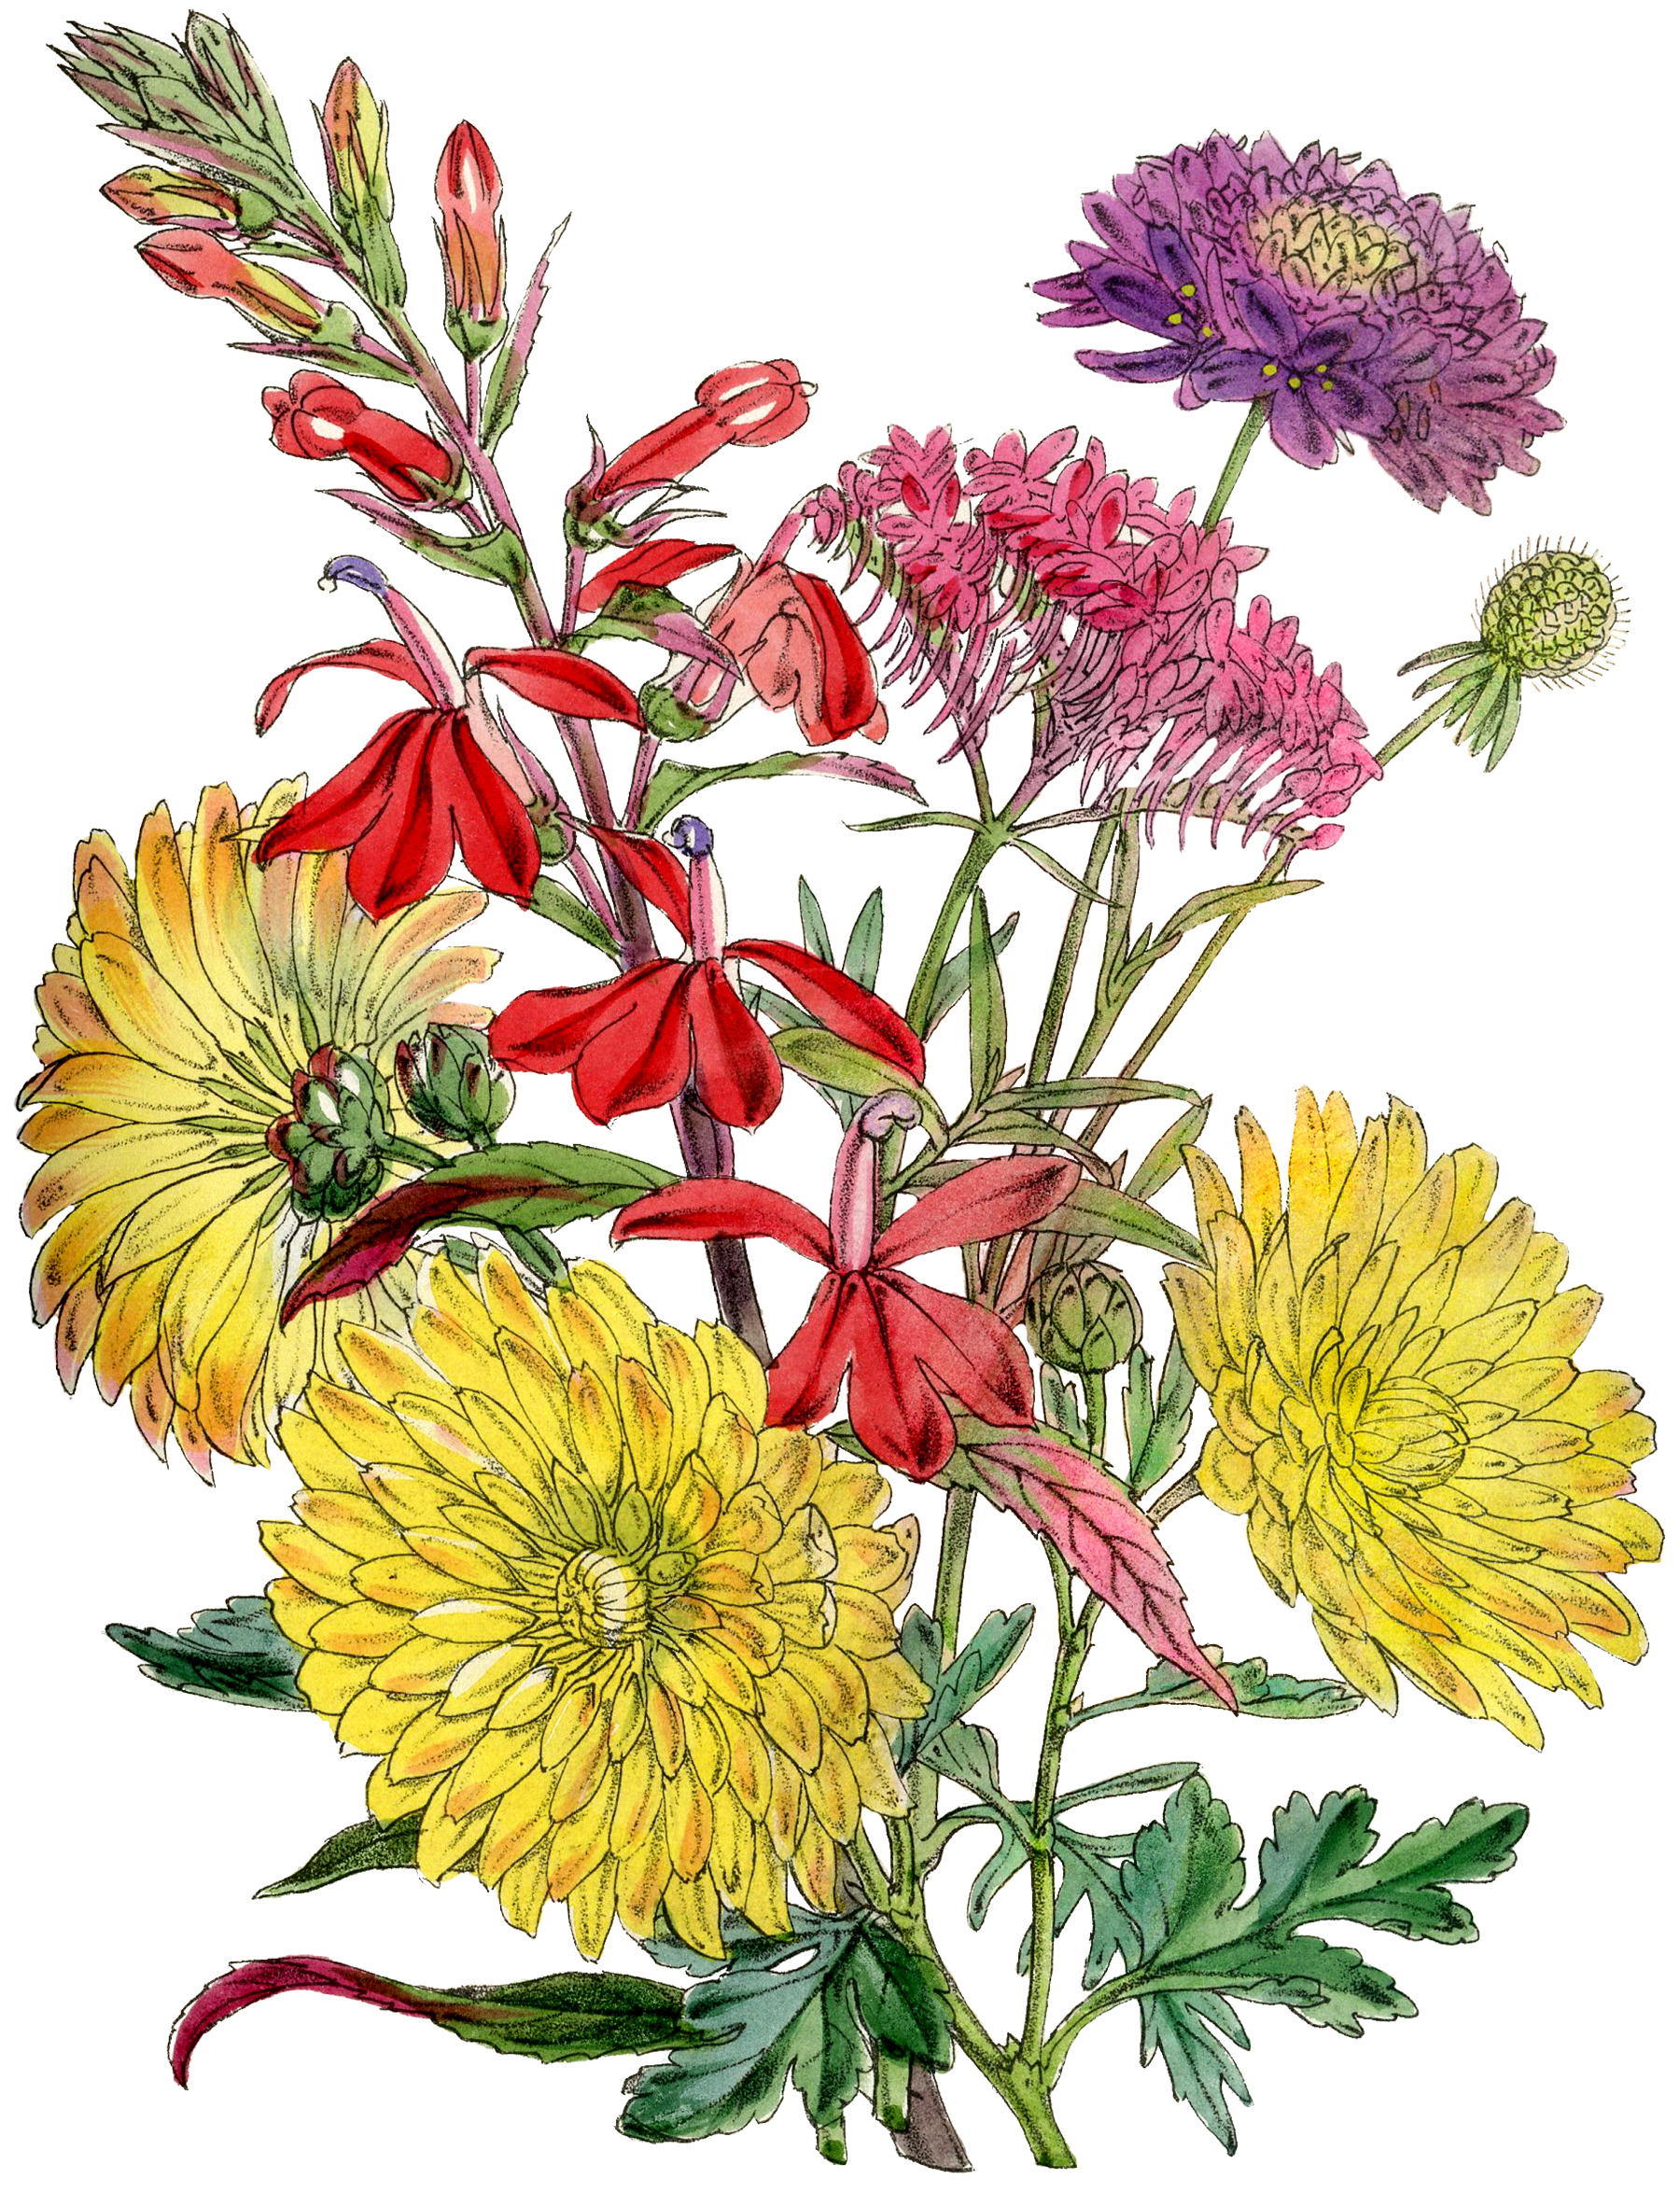 8 Chrysanthemums Images Vintage Mums The Graphics Fairy